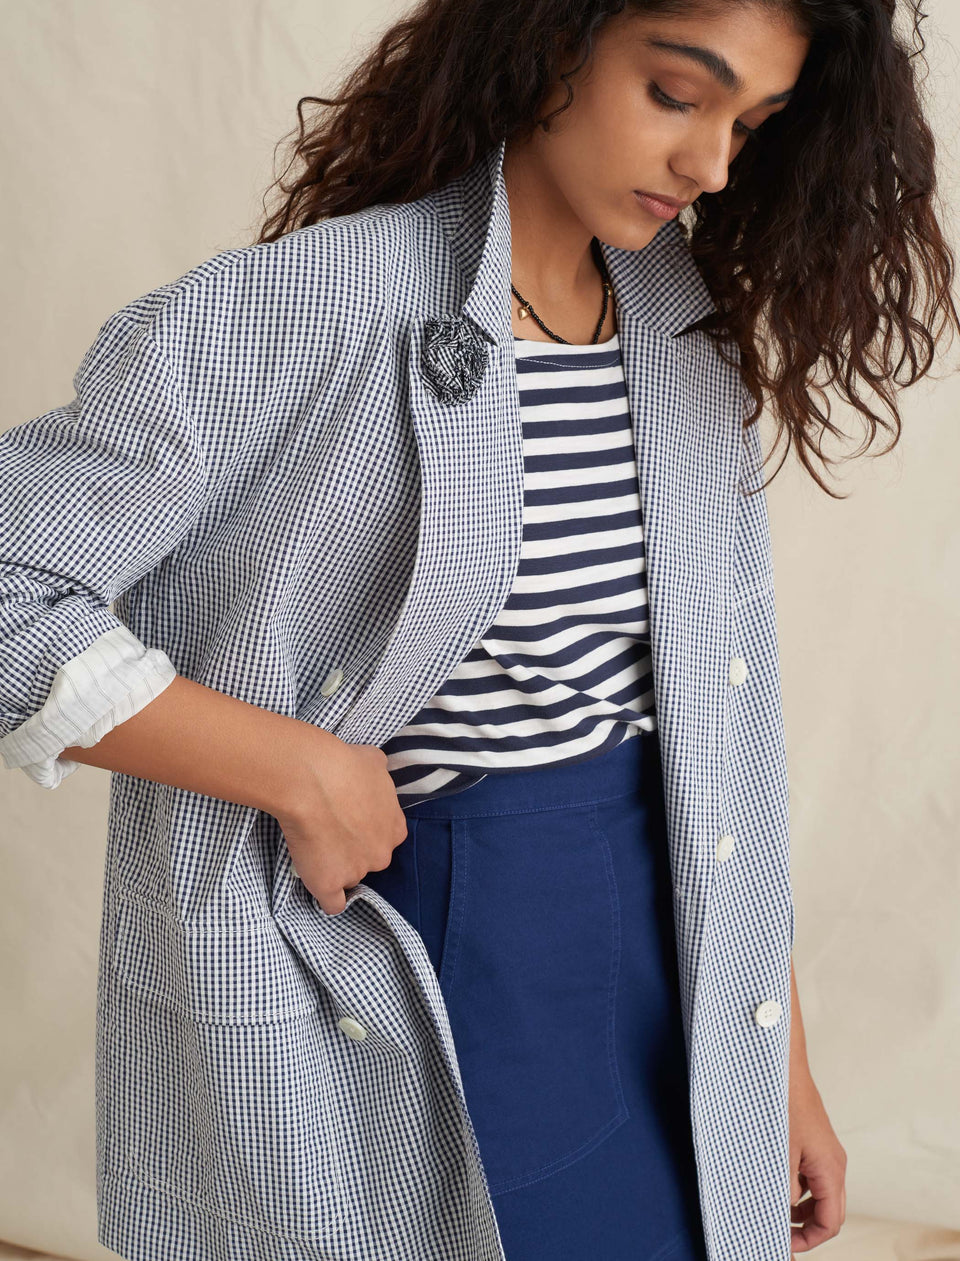 Double Breasted Blazer in Striped Portuguese Seersucker Cotton